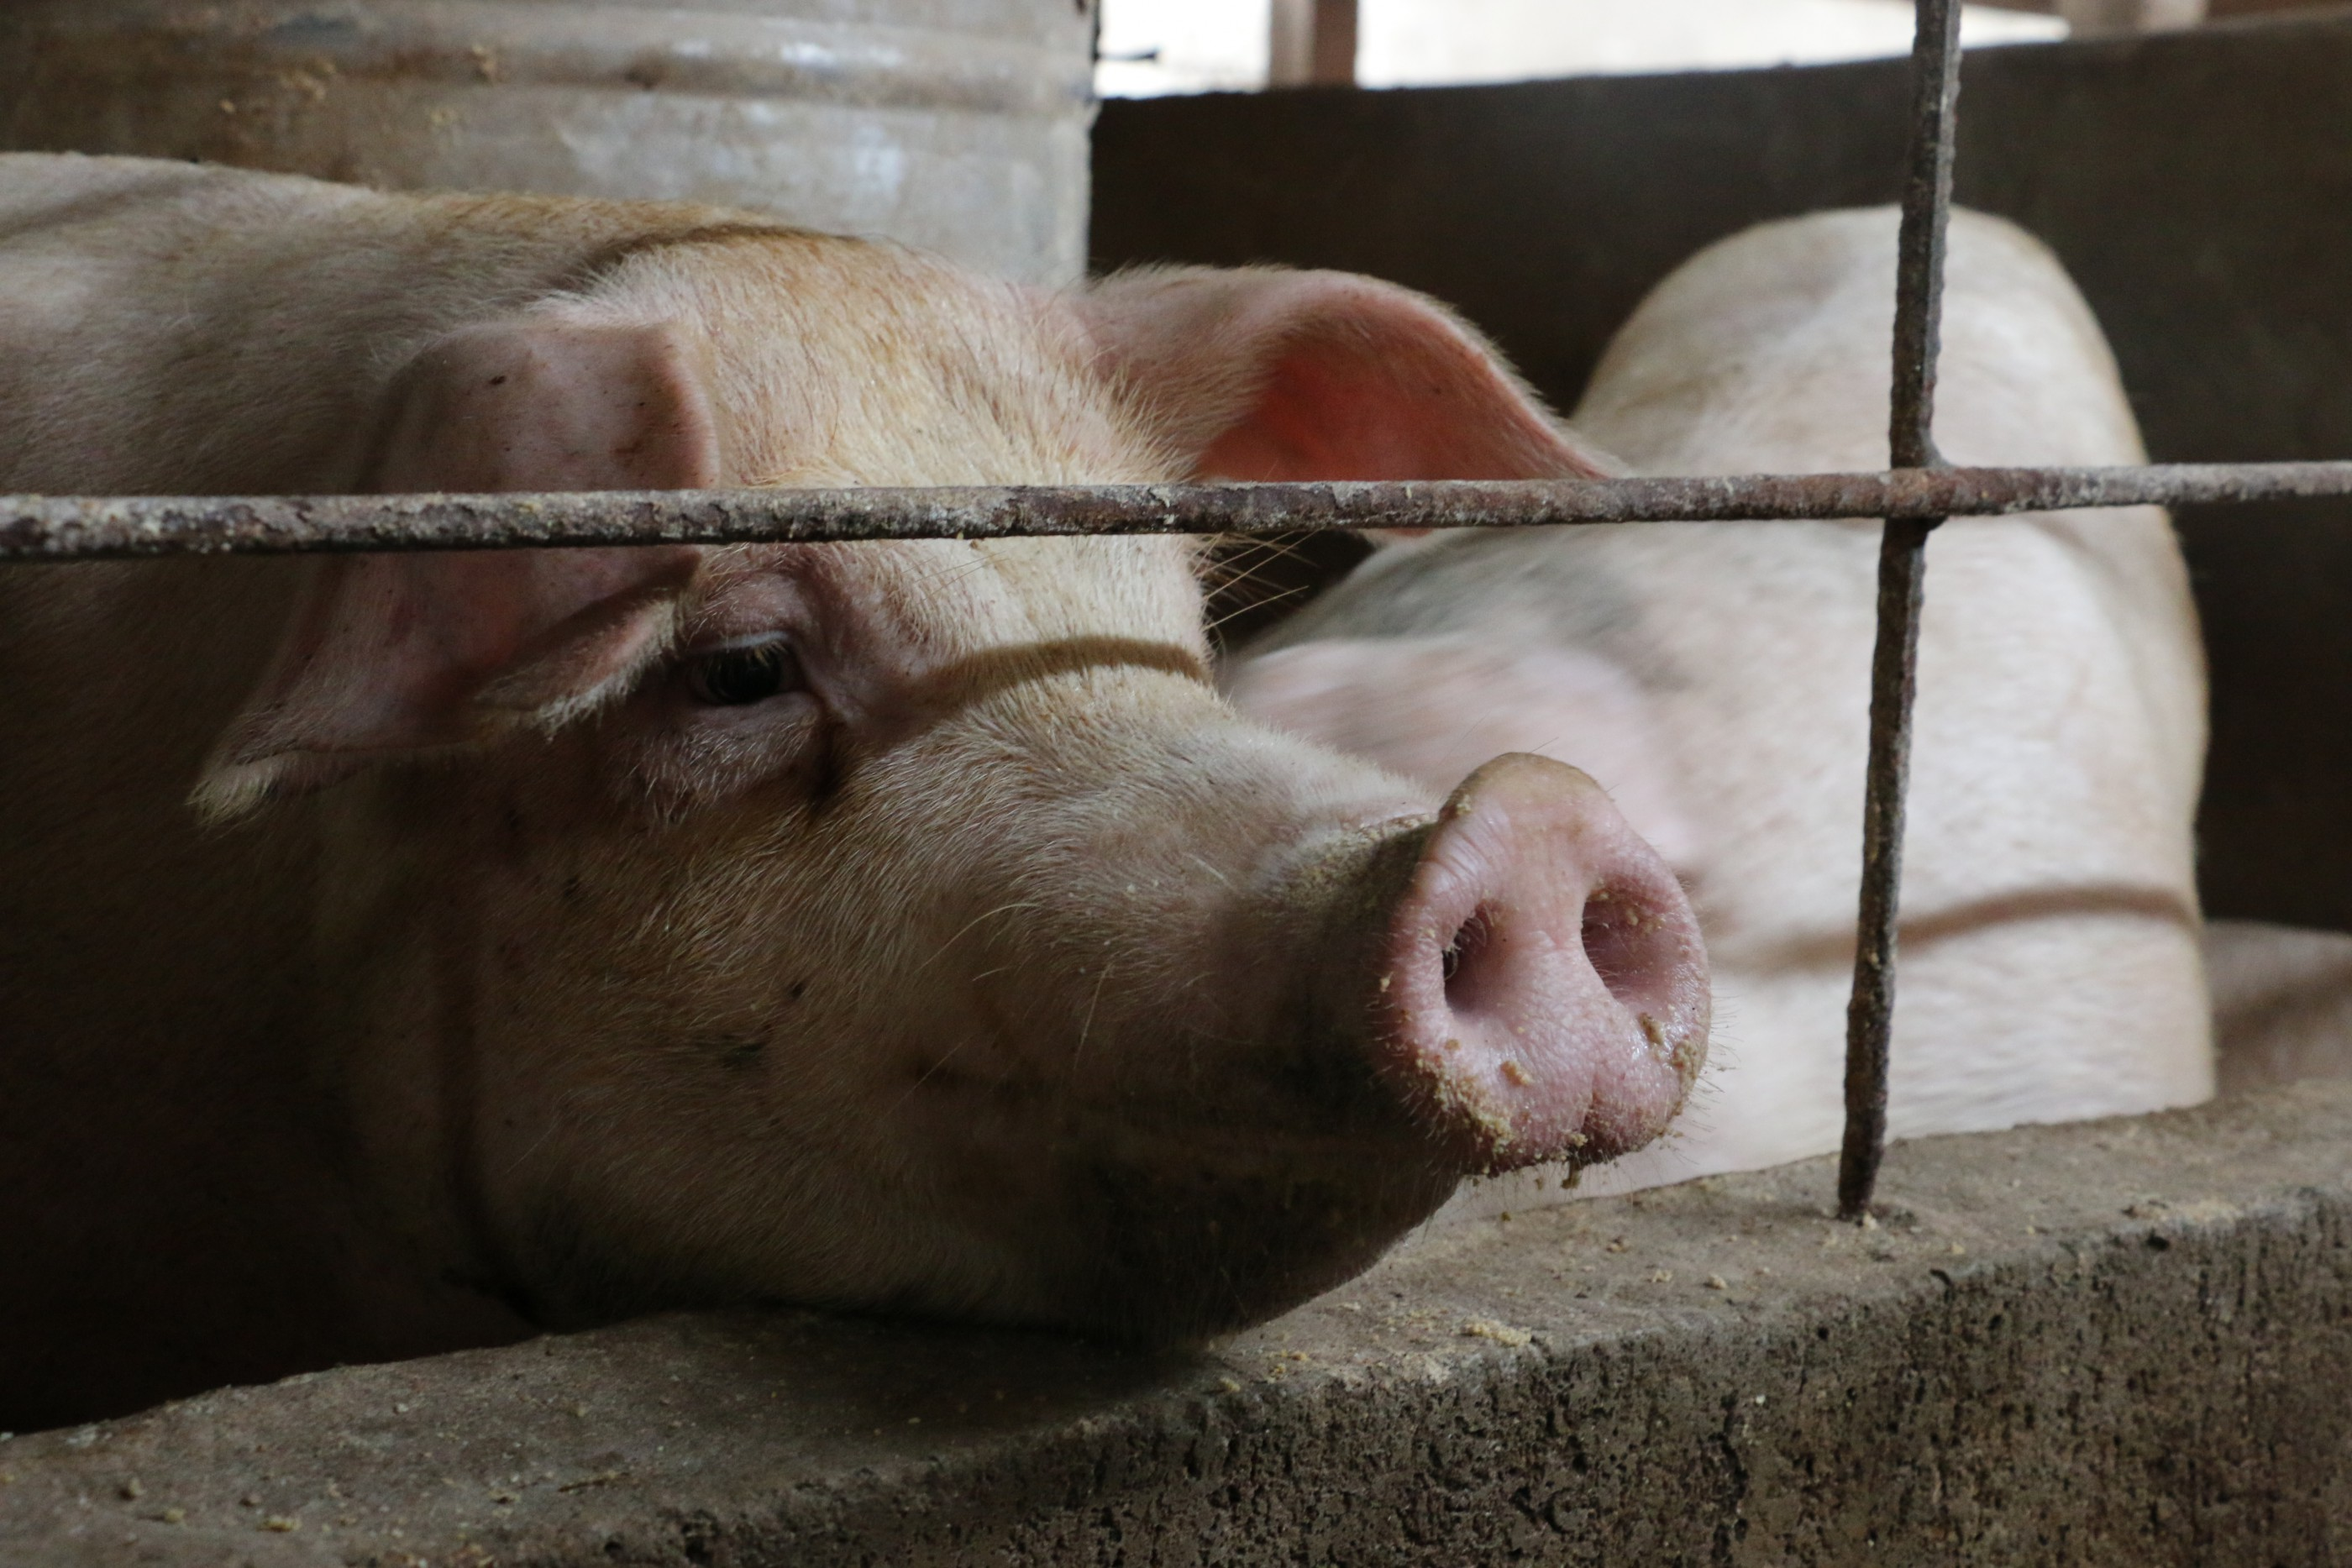 Hong Kong livestock industry shrinking pigs